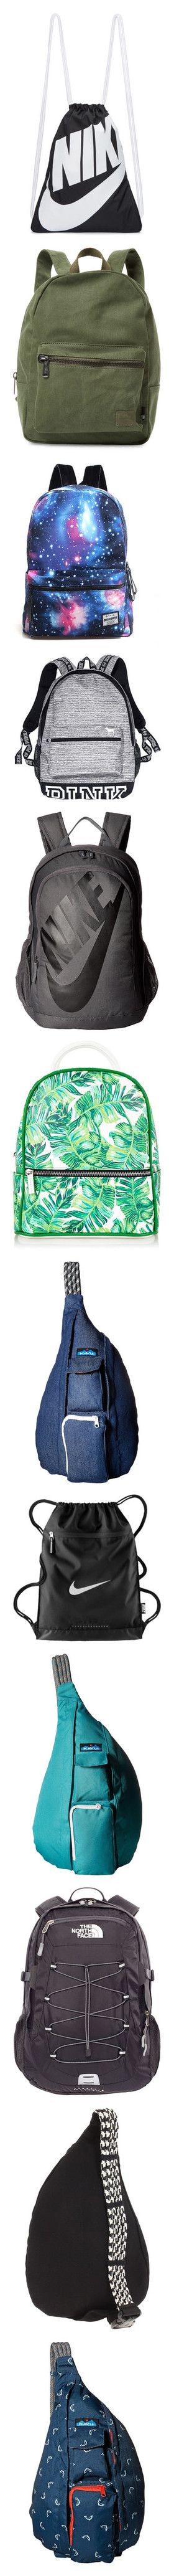 """""""backpacks"""" by violetsnroses ❤ liked on Polyvore featuring bags, backpacks, accessories, backpack, nike, purses, black, draw string backpack, drawstring bag and drawstring backpack"""